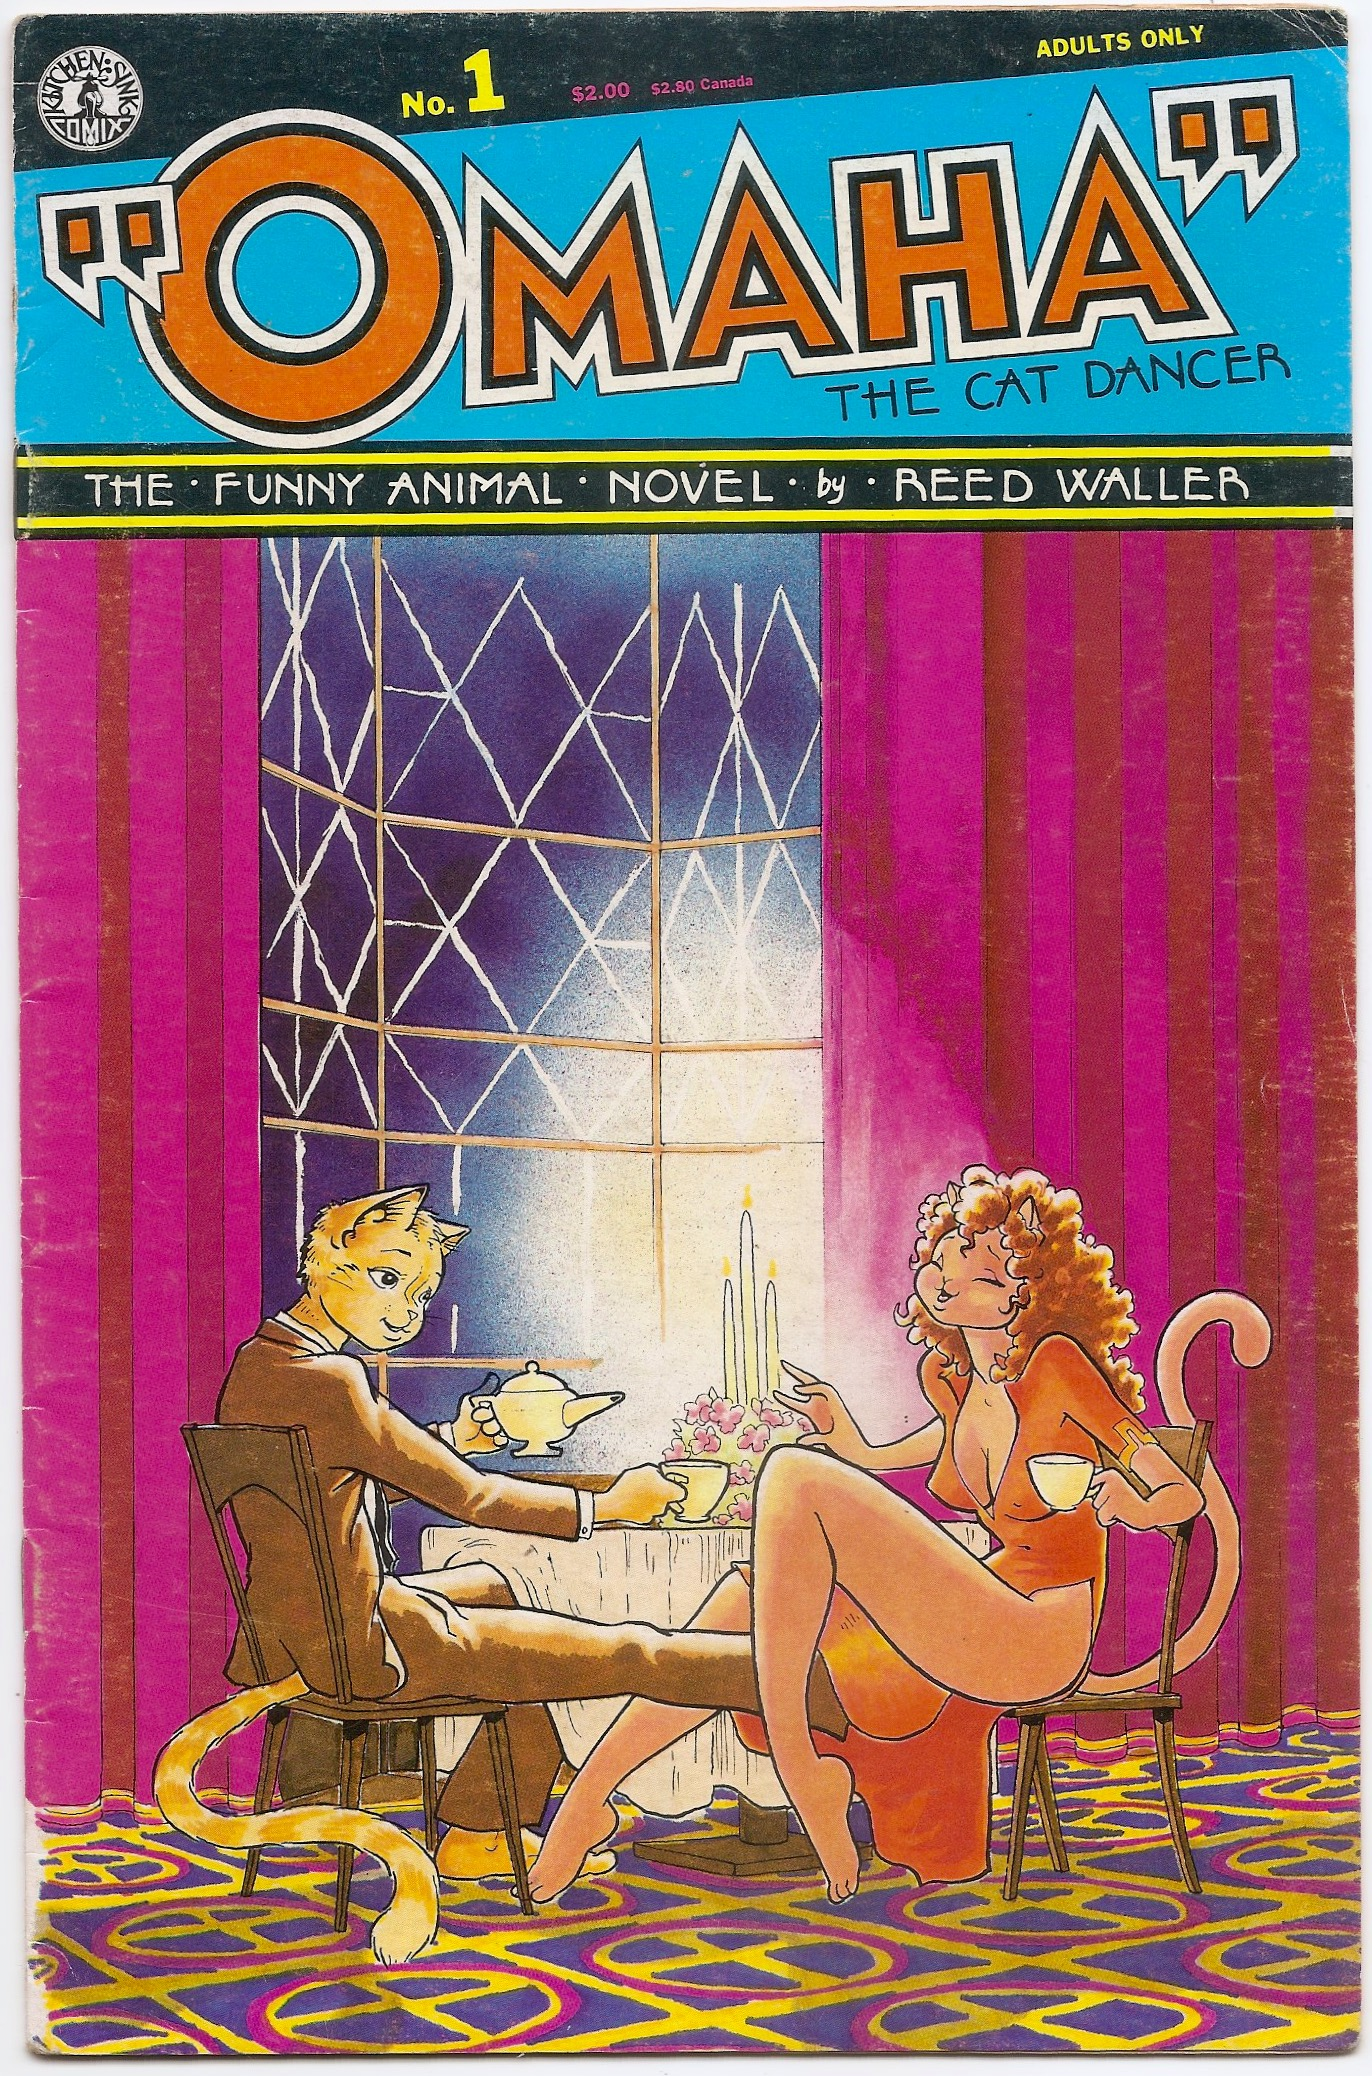 Funny Adult Comics omaha the cat dancer # 1 (adult only)